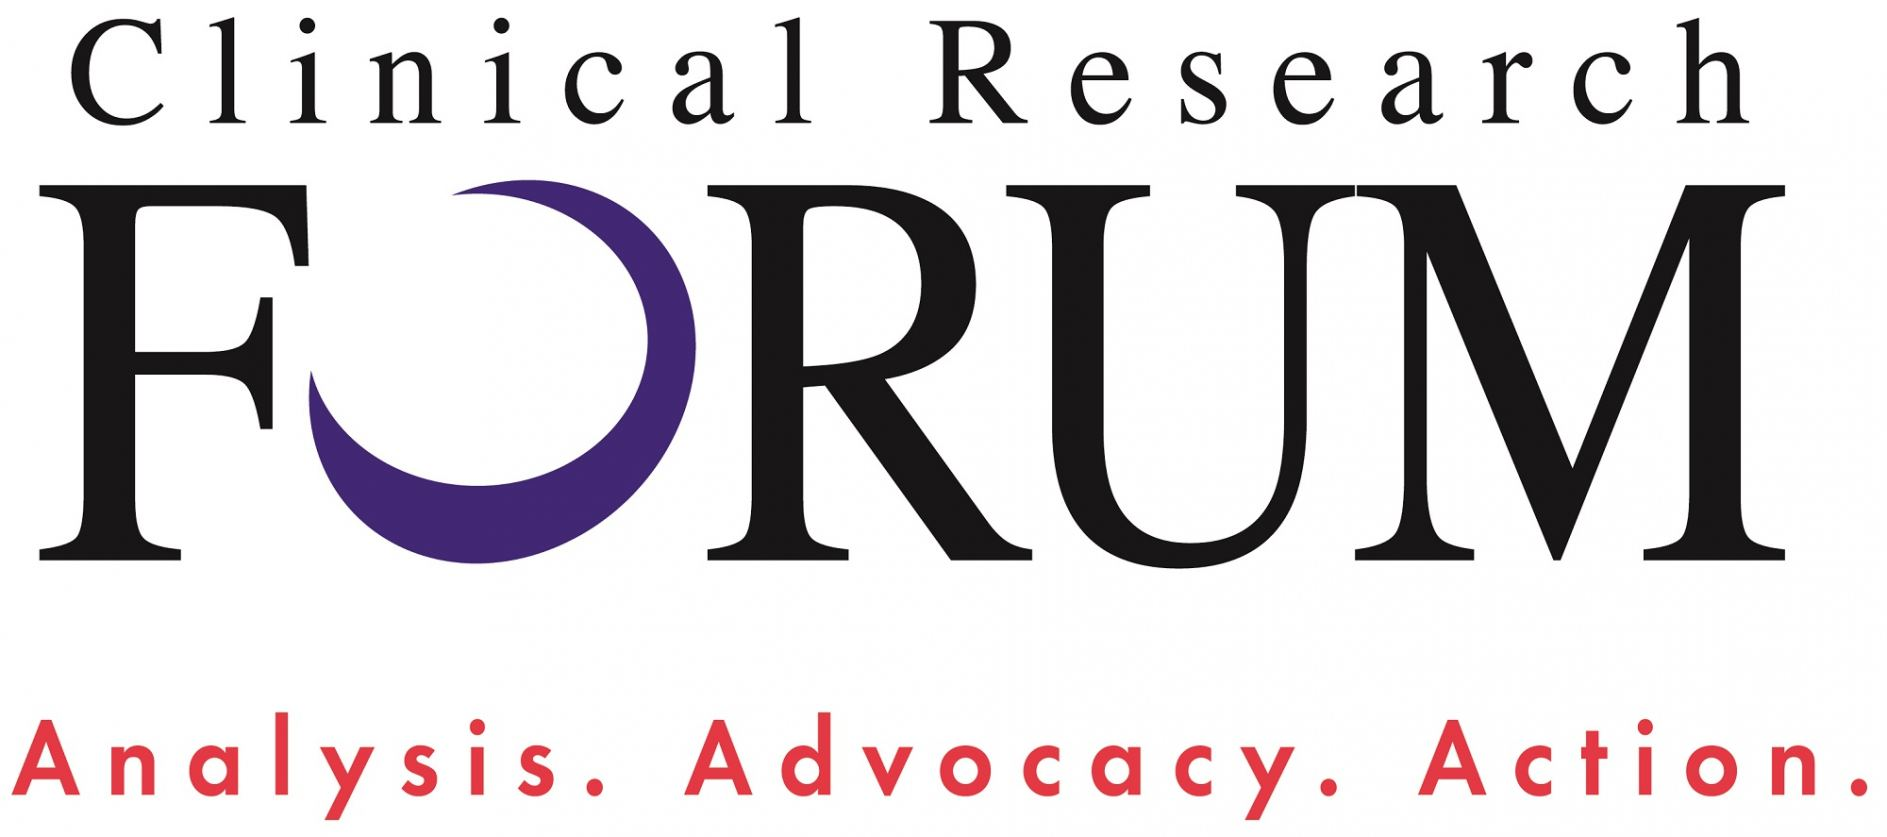 Clinical Research Forum Logo